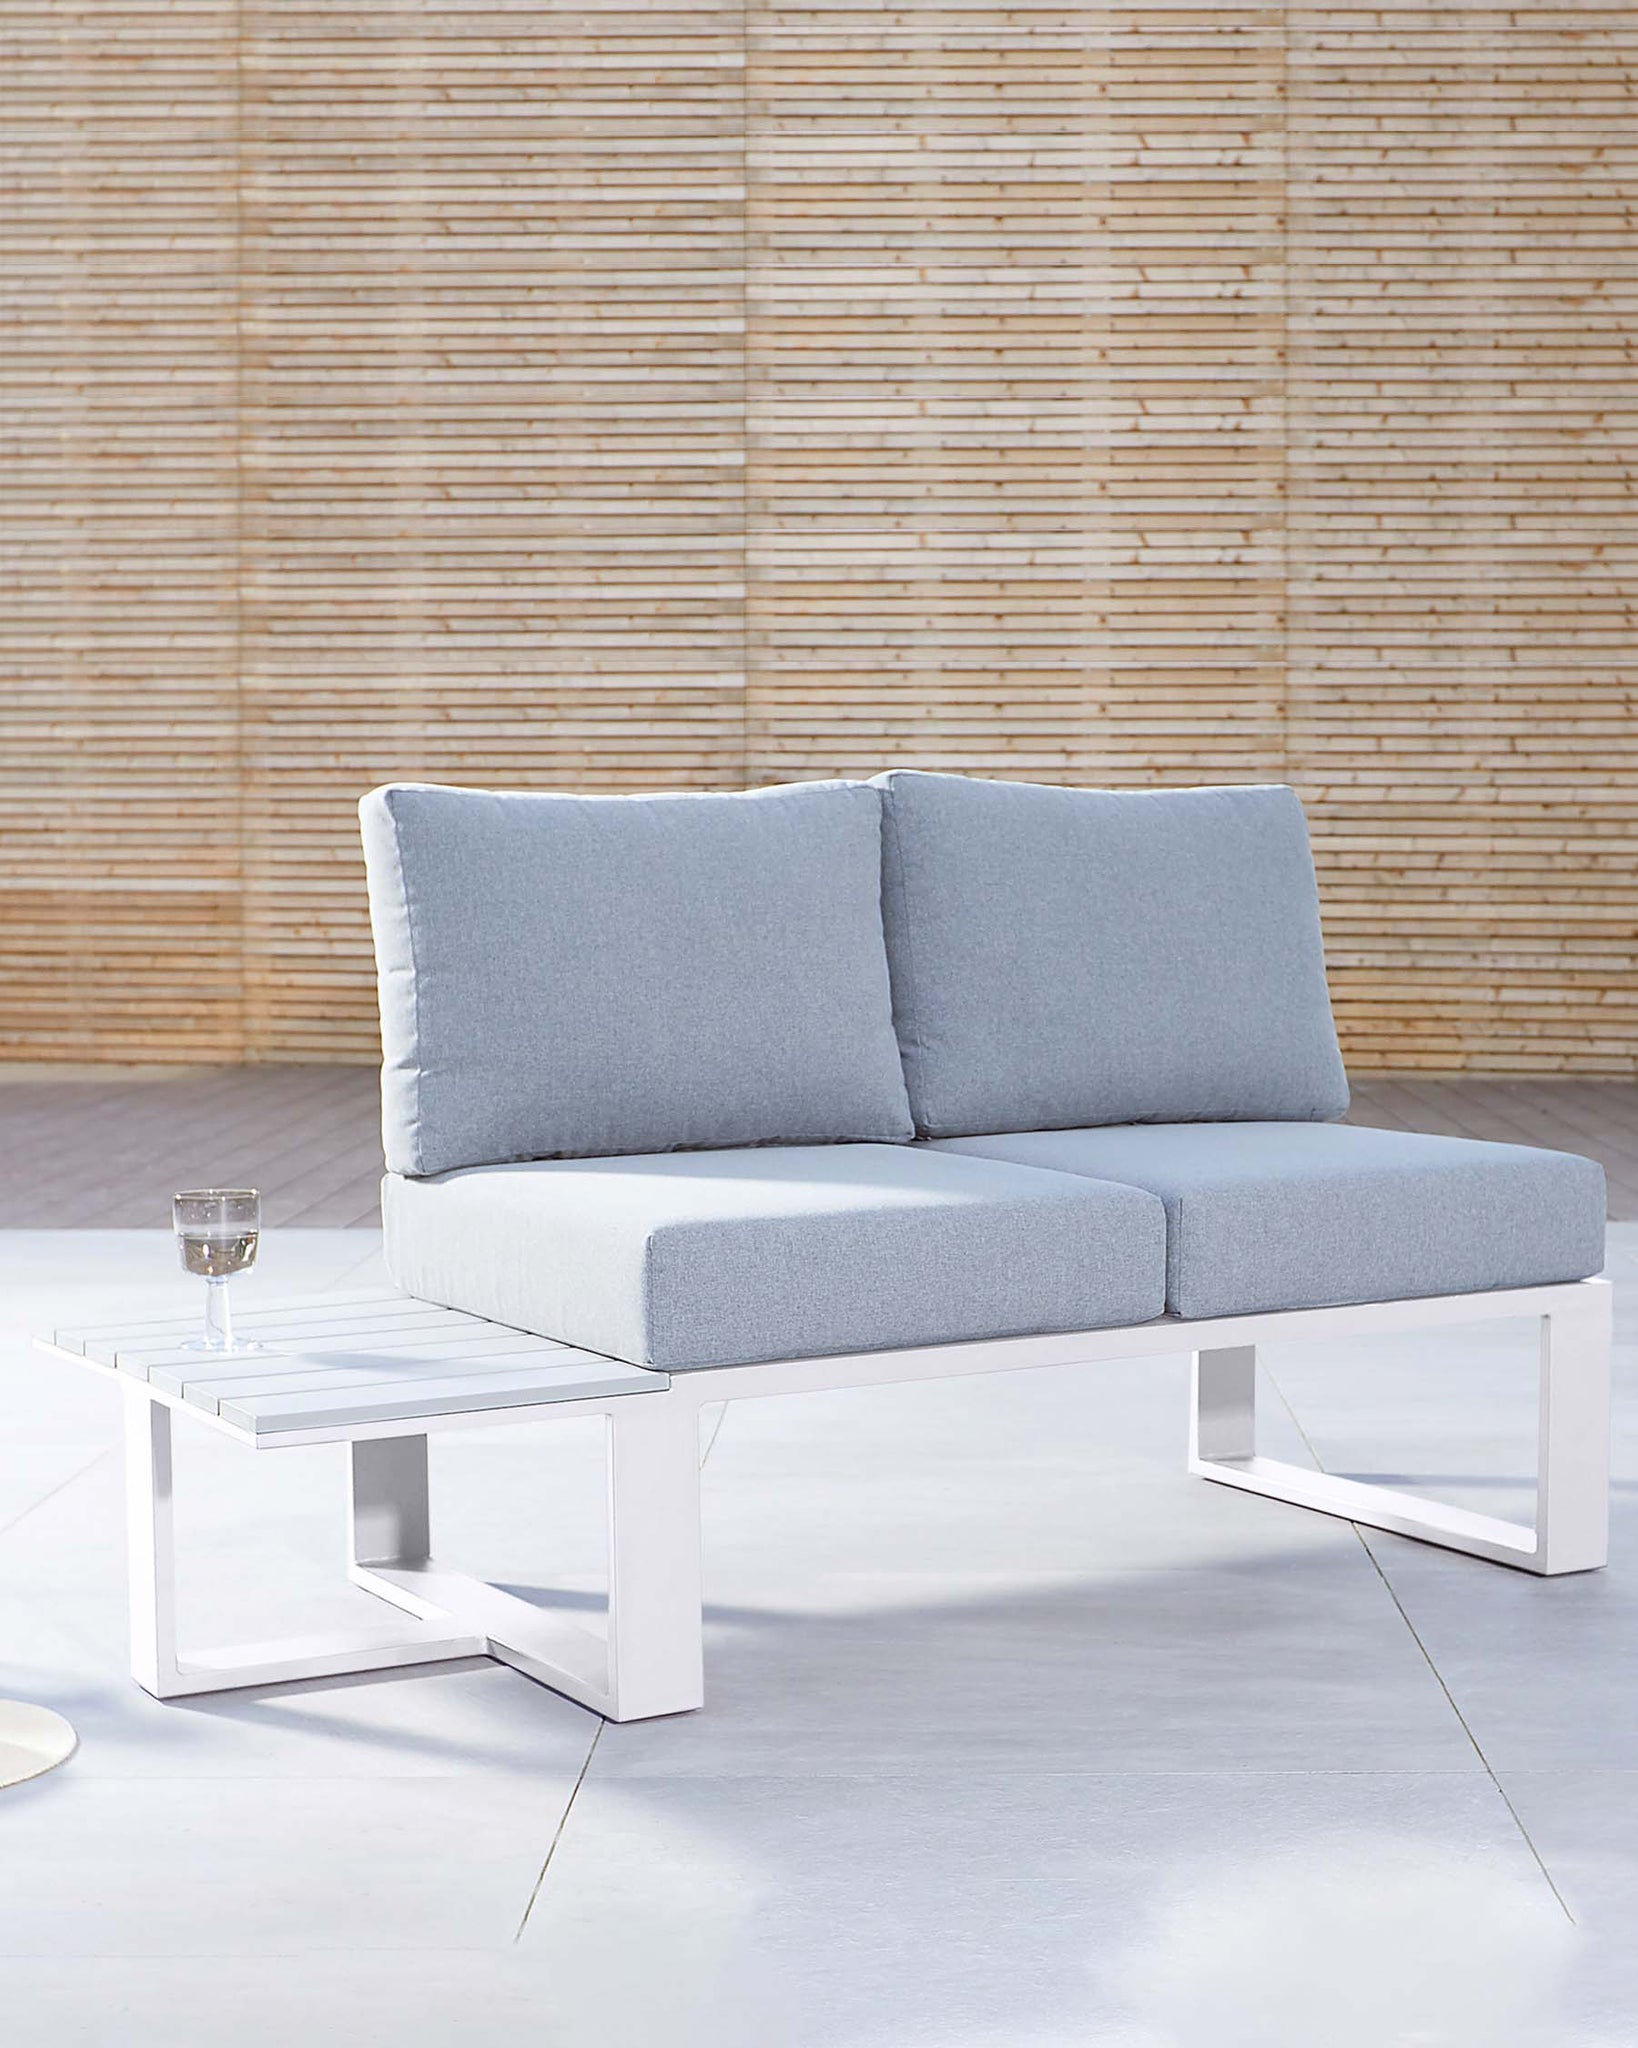 Savannah White Garden 2 Seater Modular Sofa with Side Table